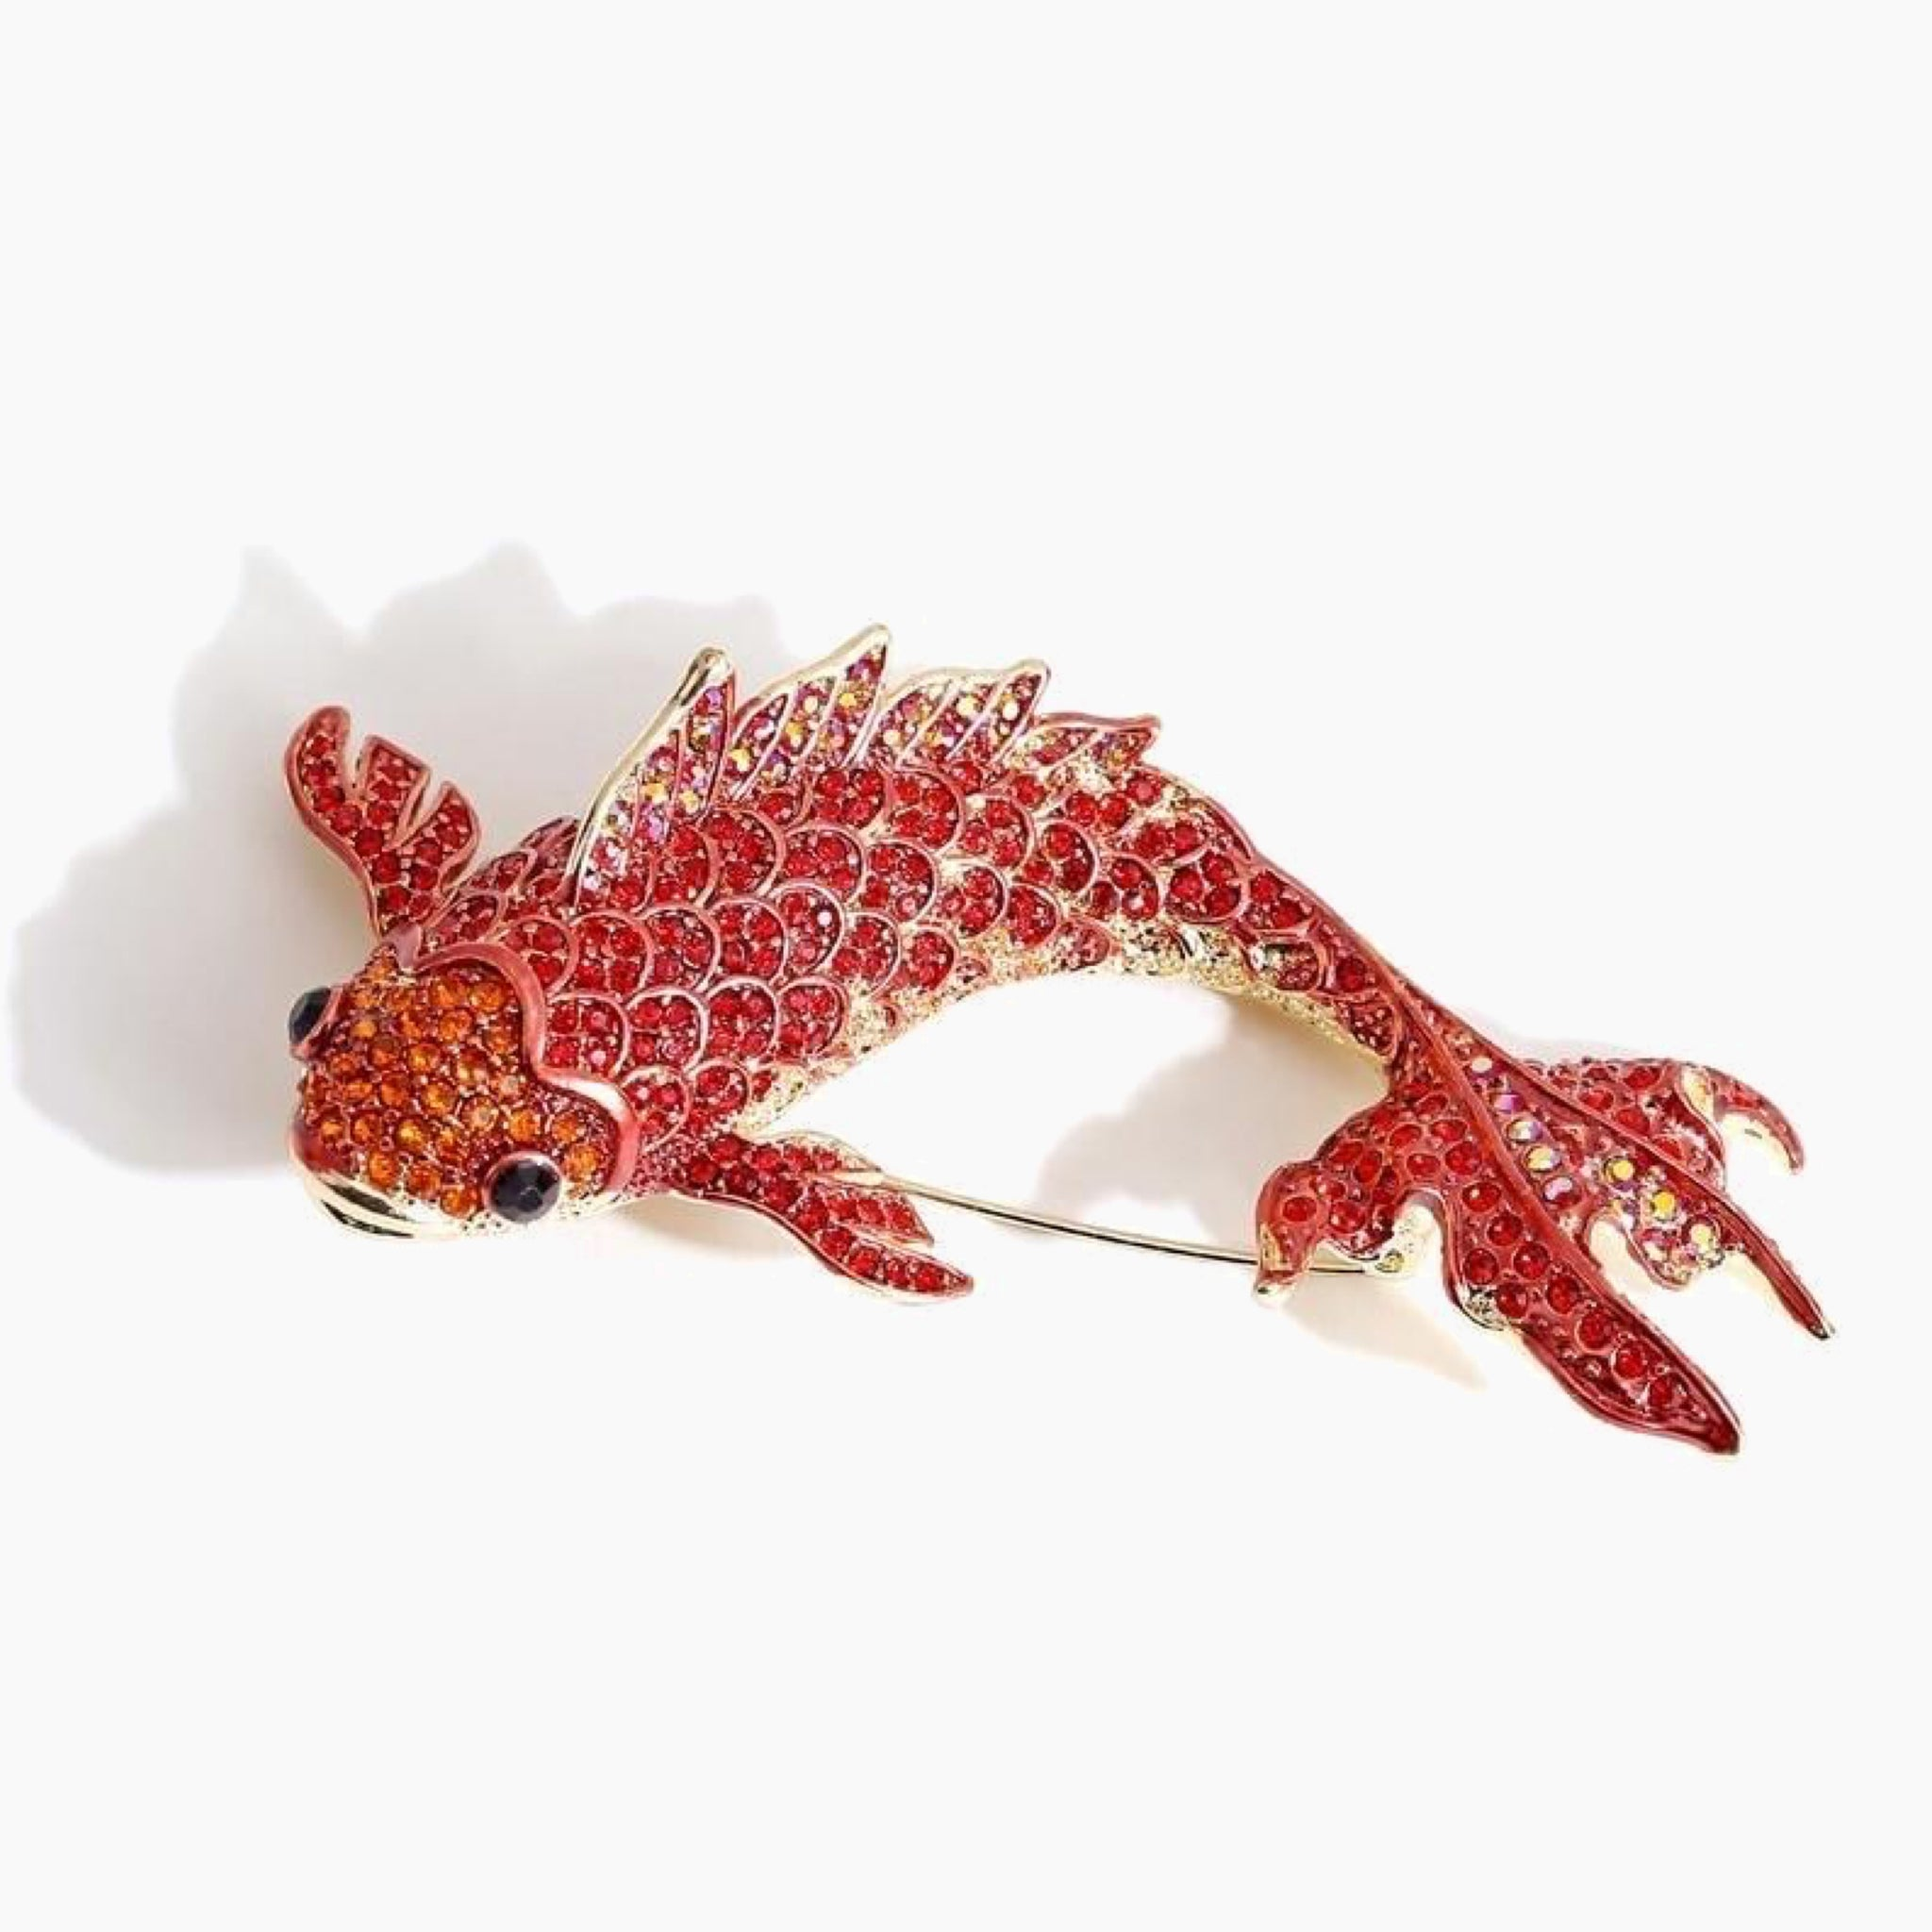 Red Koi Carp Fish Rhinestone Brooch Pin Jewelry Vintage Banquet Big Brooches for Women Crystal Pins And Brooches Accessories Trend